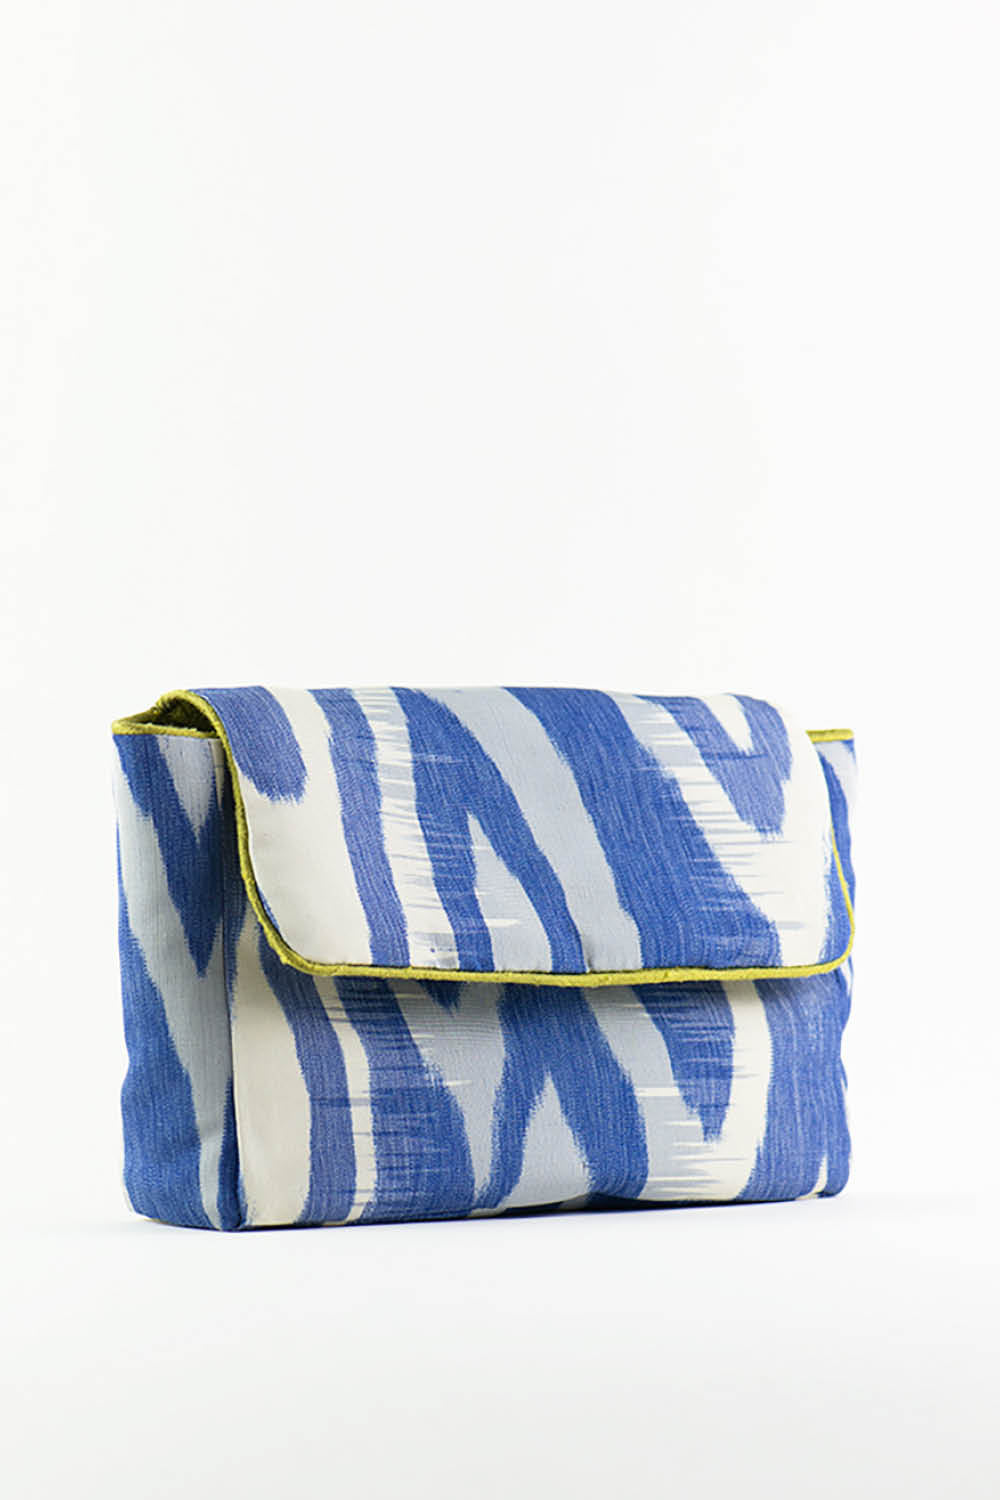 Upcycling Bag No. 4 in Blue Silk Ikat